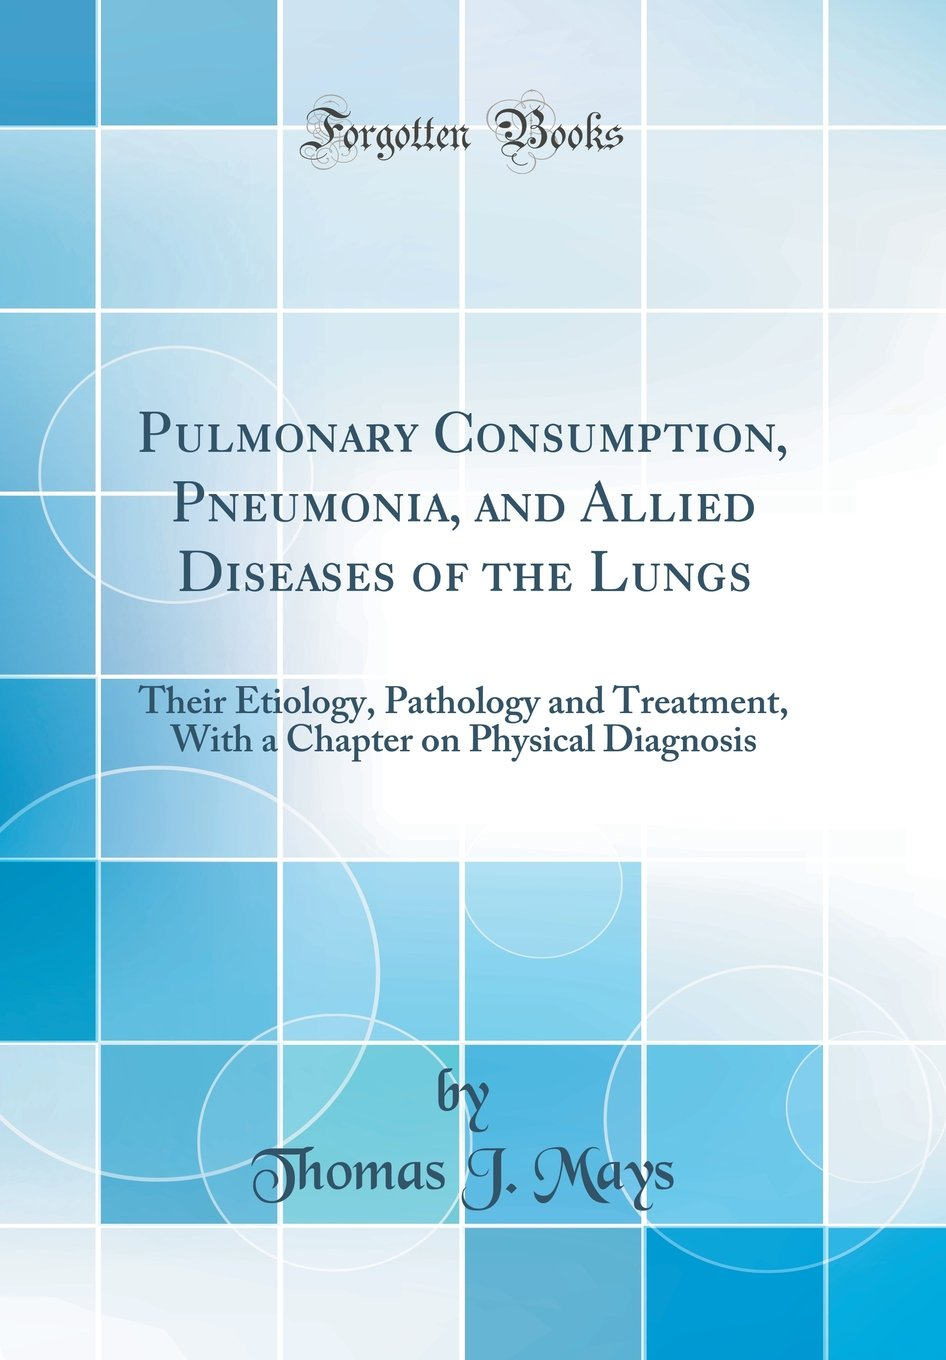 Pulmonary Consumption, Pneumonia, and Allied Diseases of the Lungs: Their Etiology, Pathology and Treatment, With a Chapter on Physical Diagnosis (Classic Reprint) pdf epub